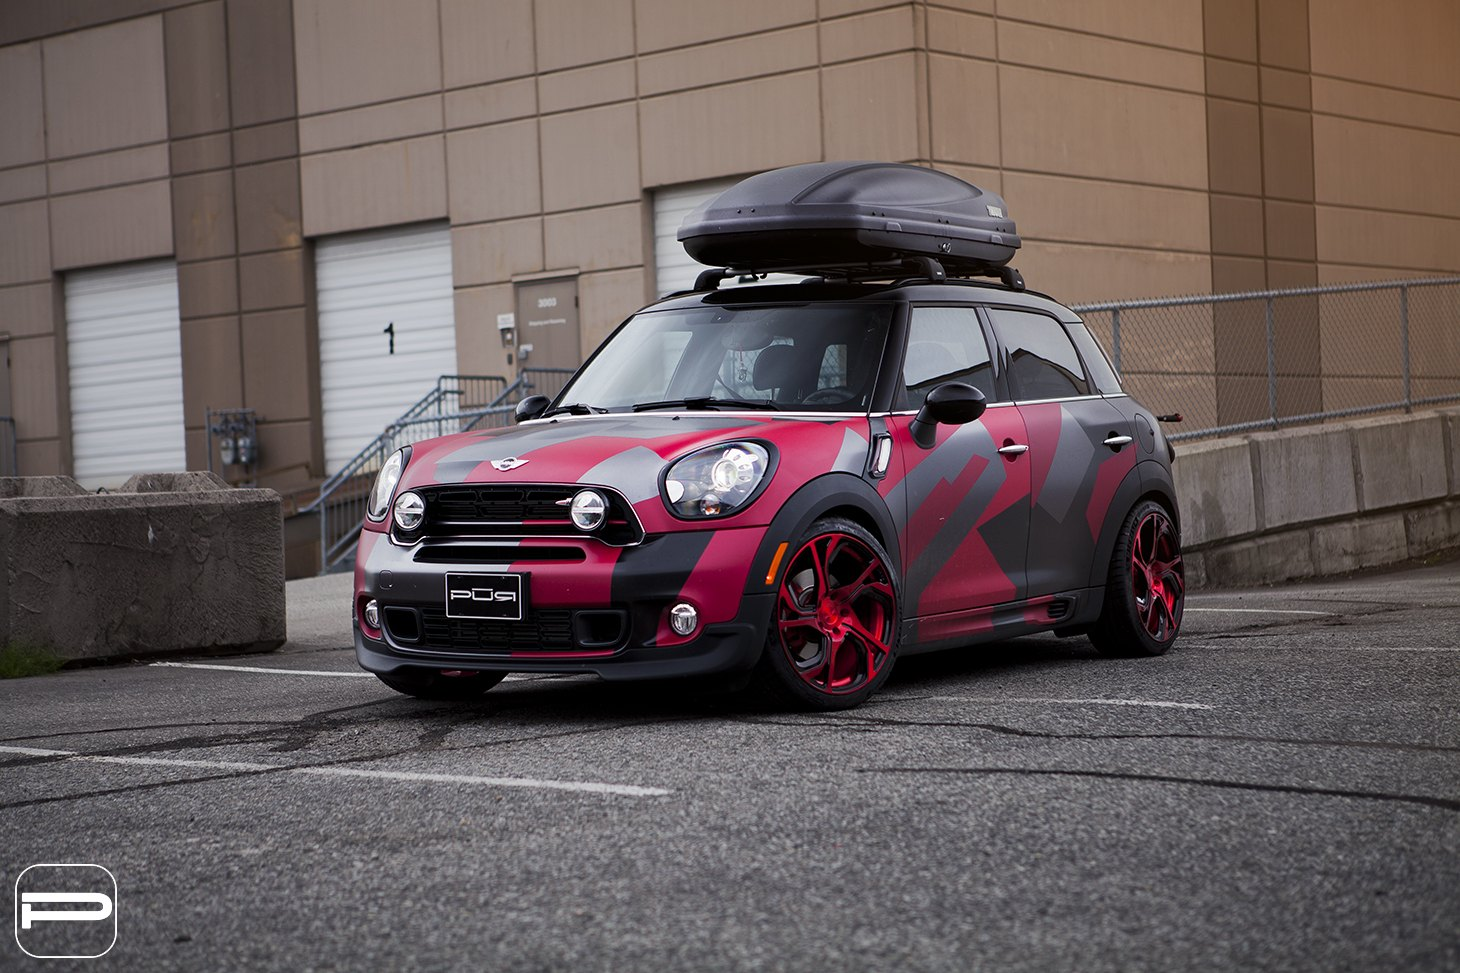 Truly Unique Custom Paint on Mini Countryman with Roof